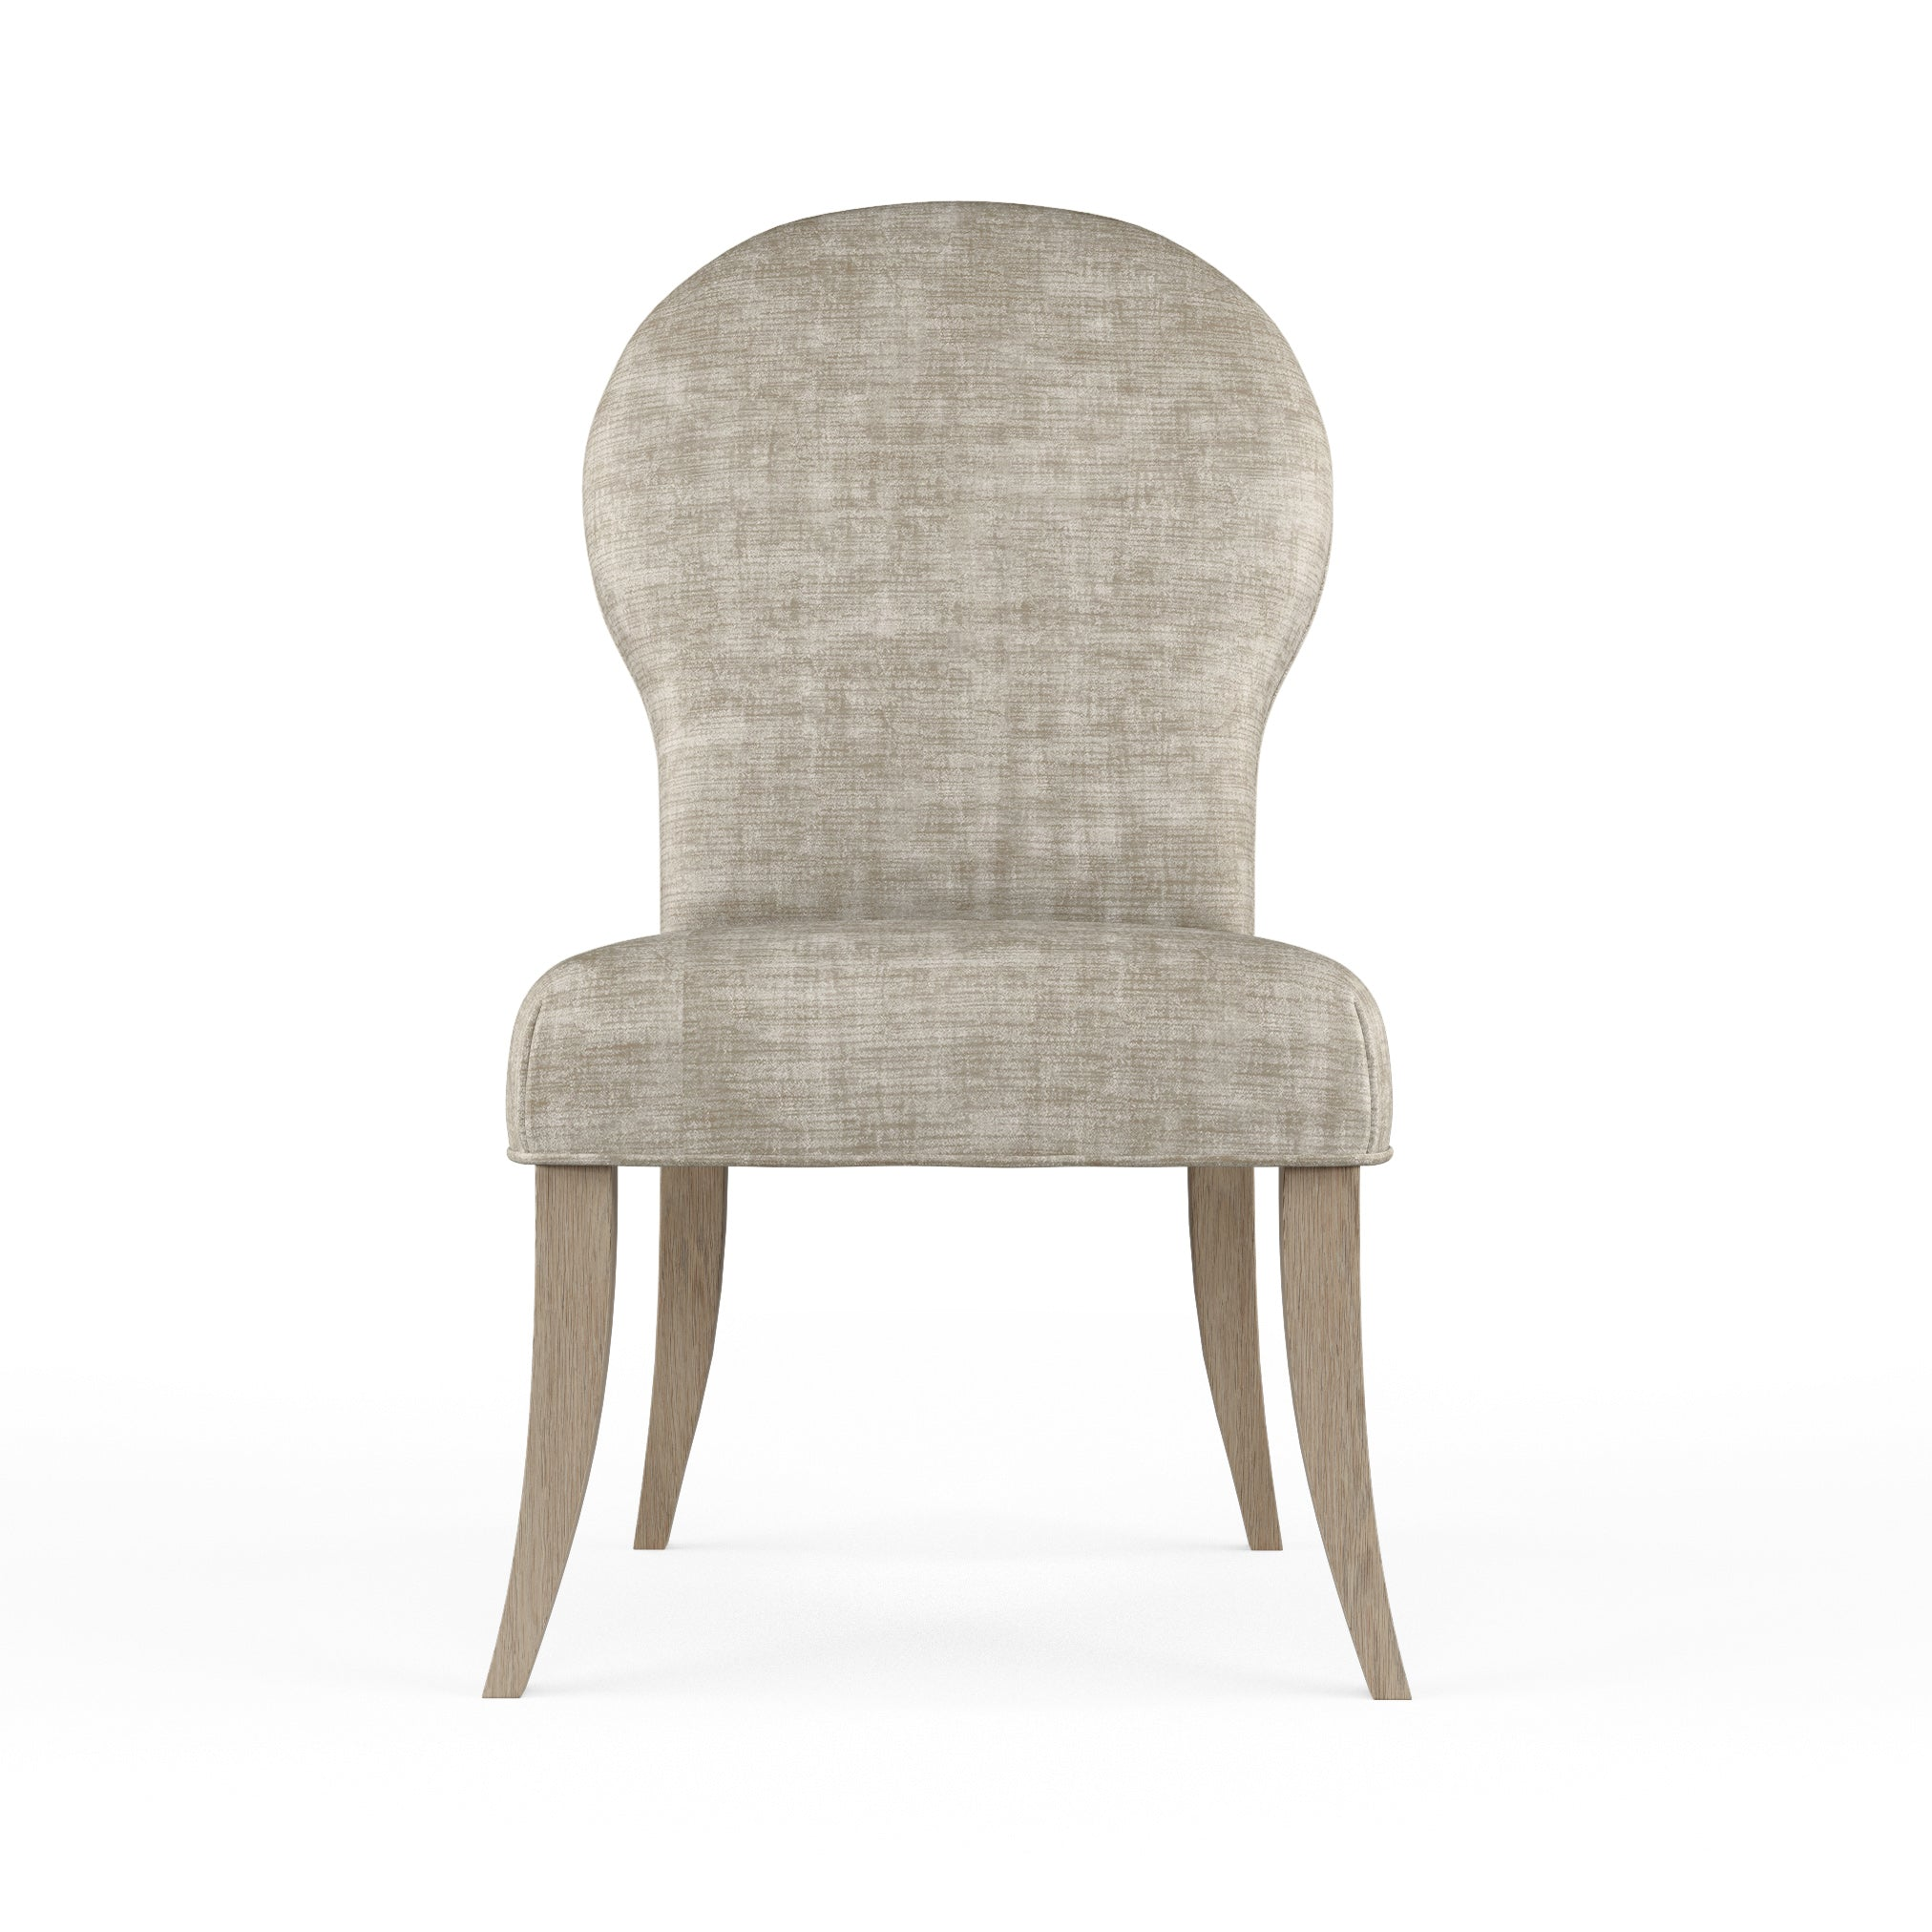 Caitlyn Dining Chair - Oyster Crushed Velvet